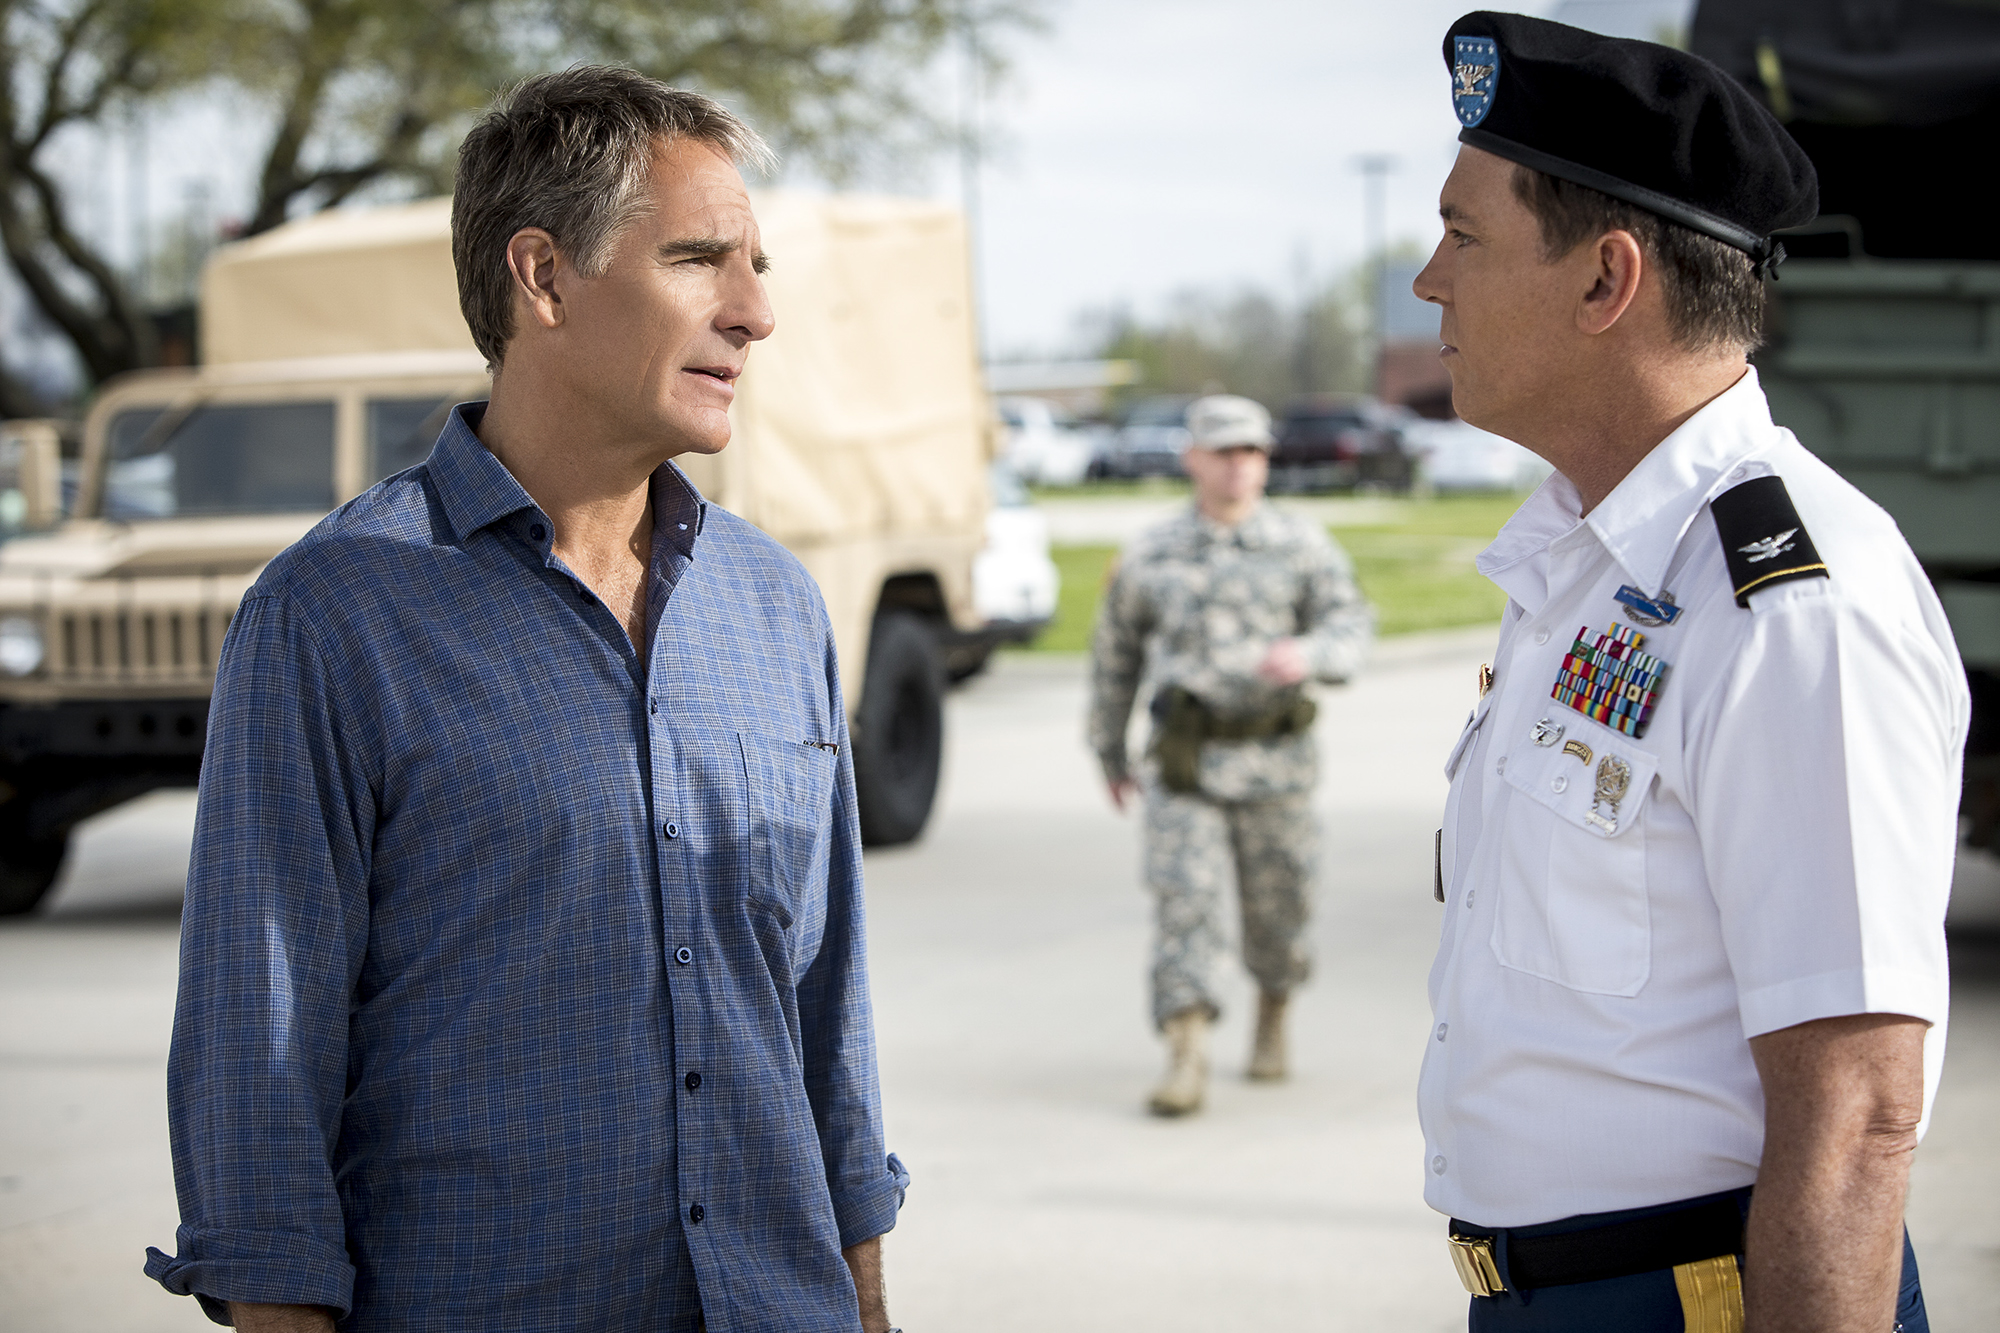 Scott Bakula as Special Agent Dwayne Pride and Nicholas Lea as Army Colonel Samuel Nilsen